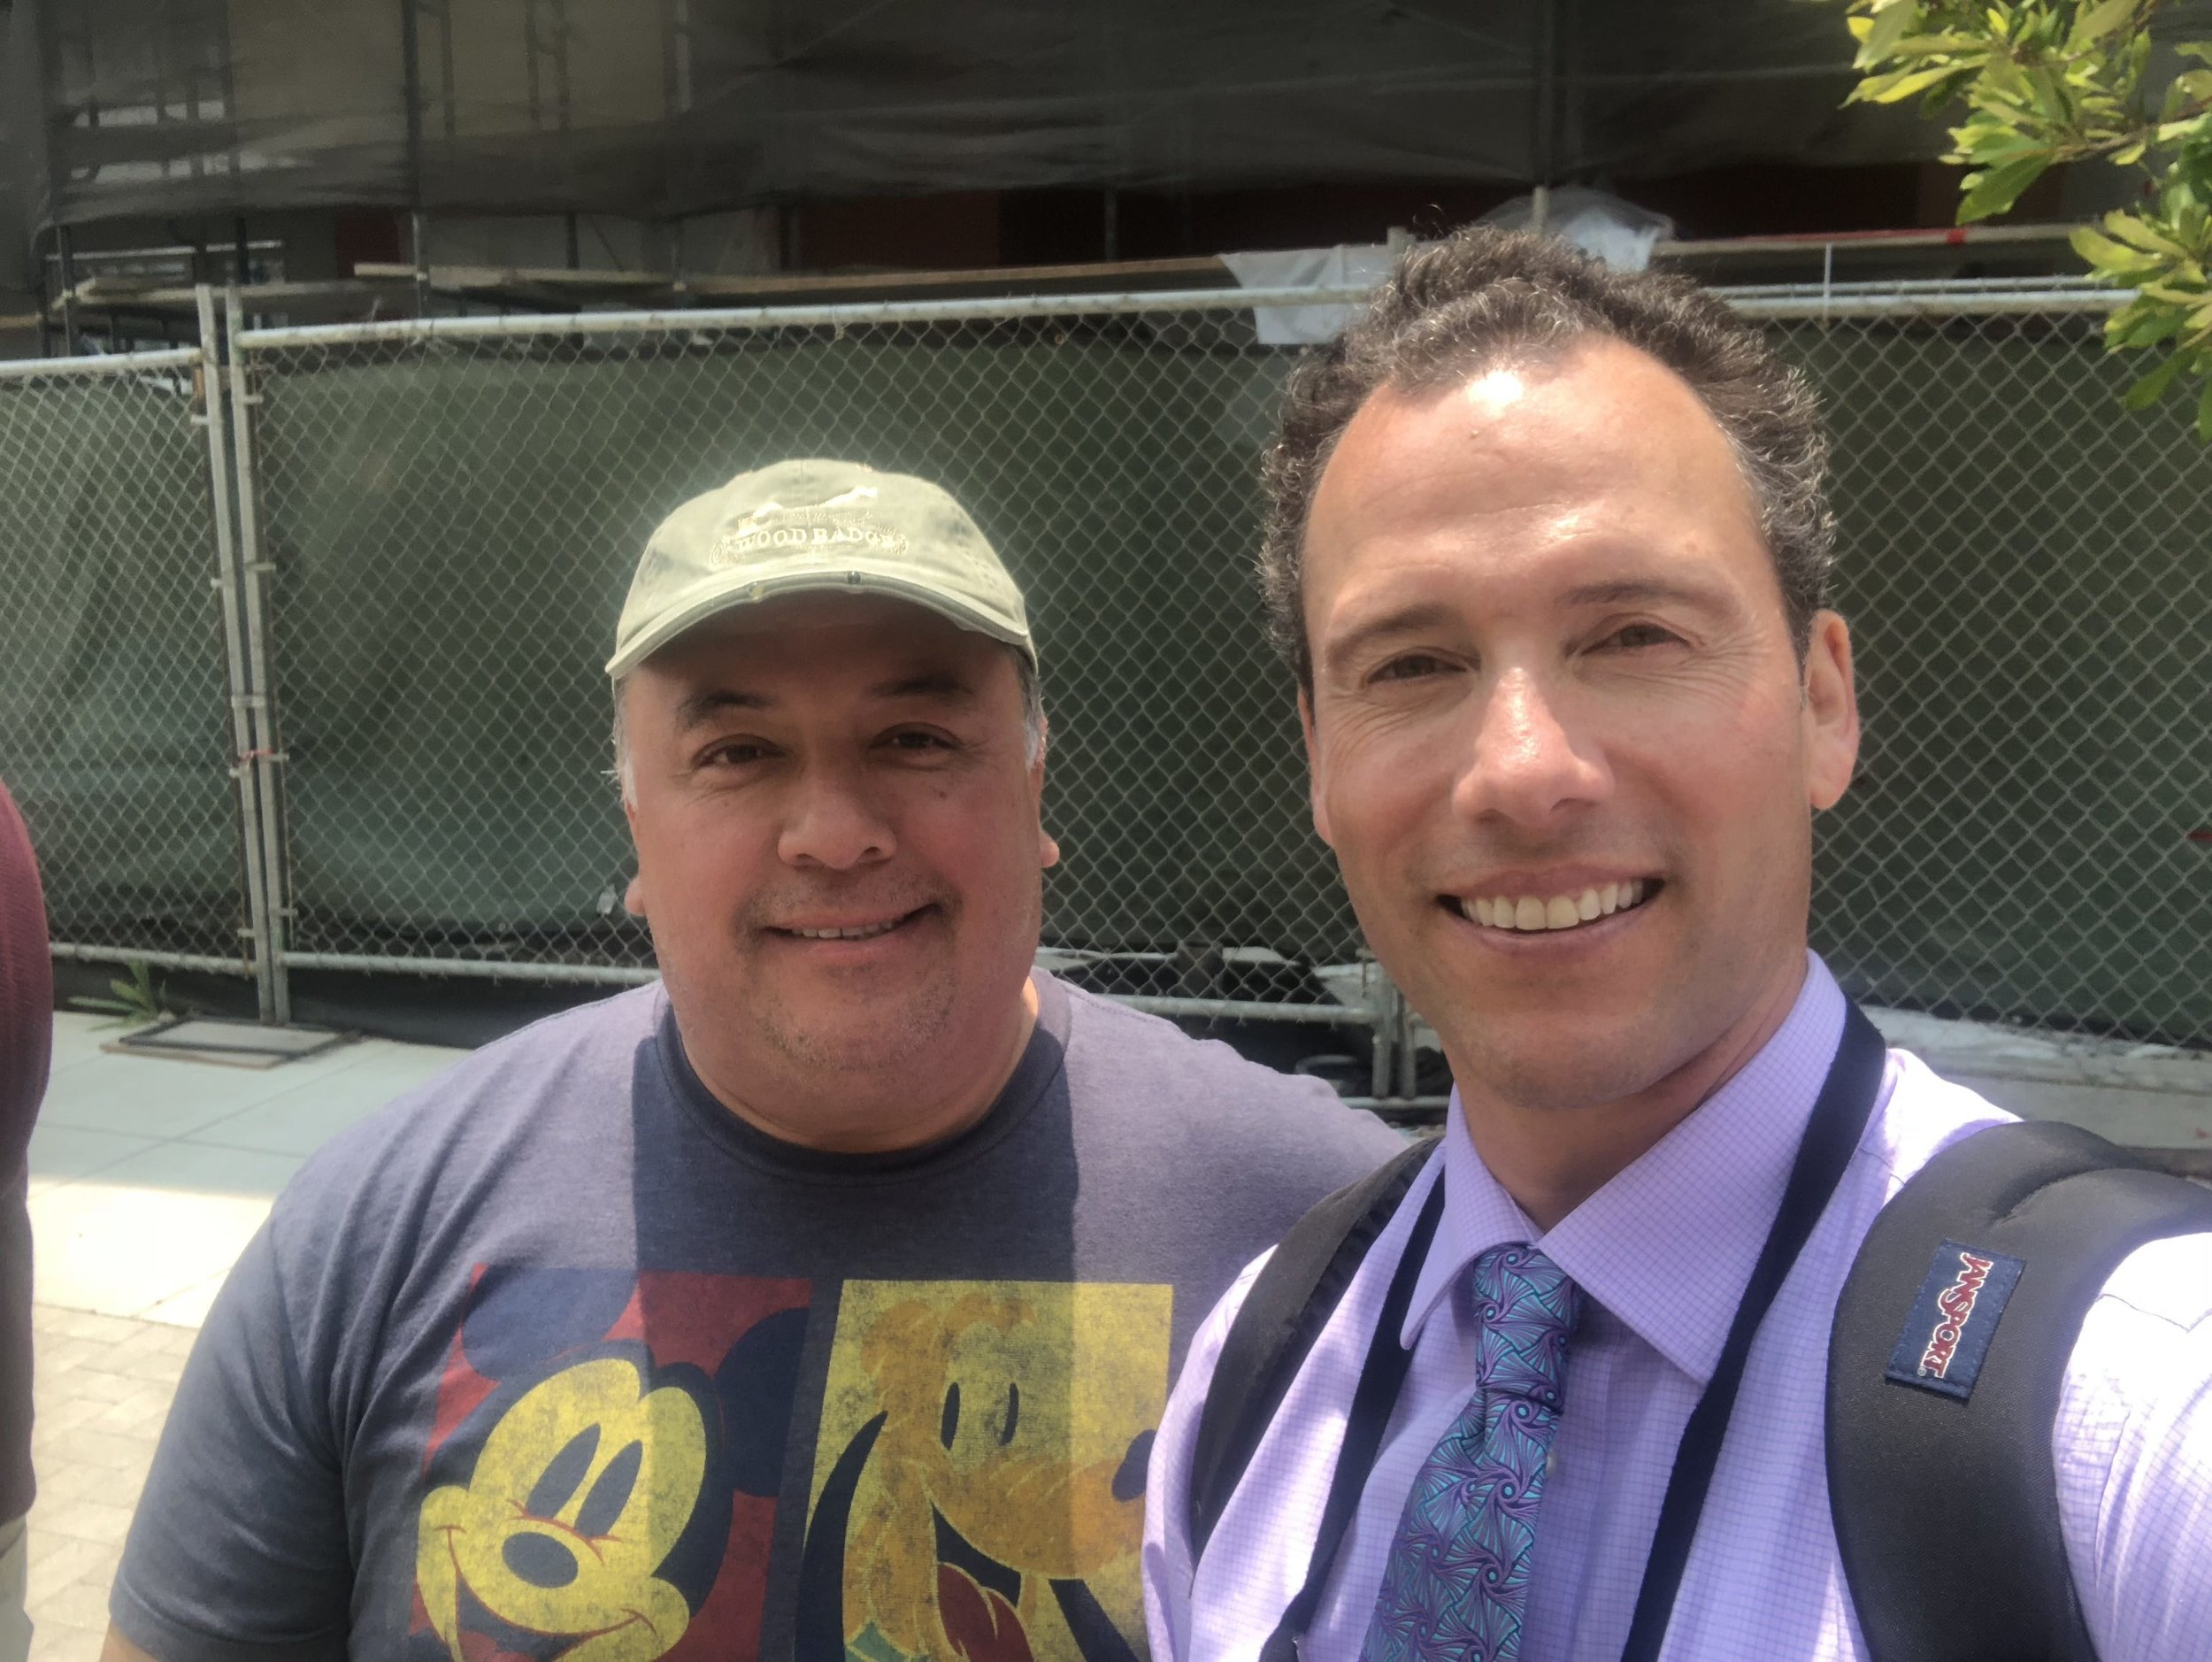 Julio is the armed security guard who accompanied me on the homicide story. He's a former Bay Area police officer. He stuck with me for every second I was out on the scene shooting video and conducting interviews.